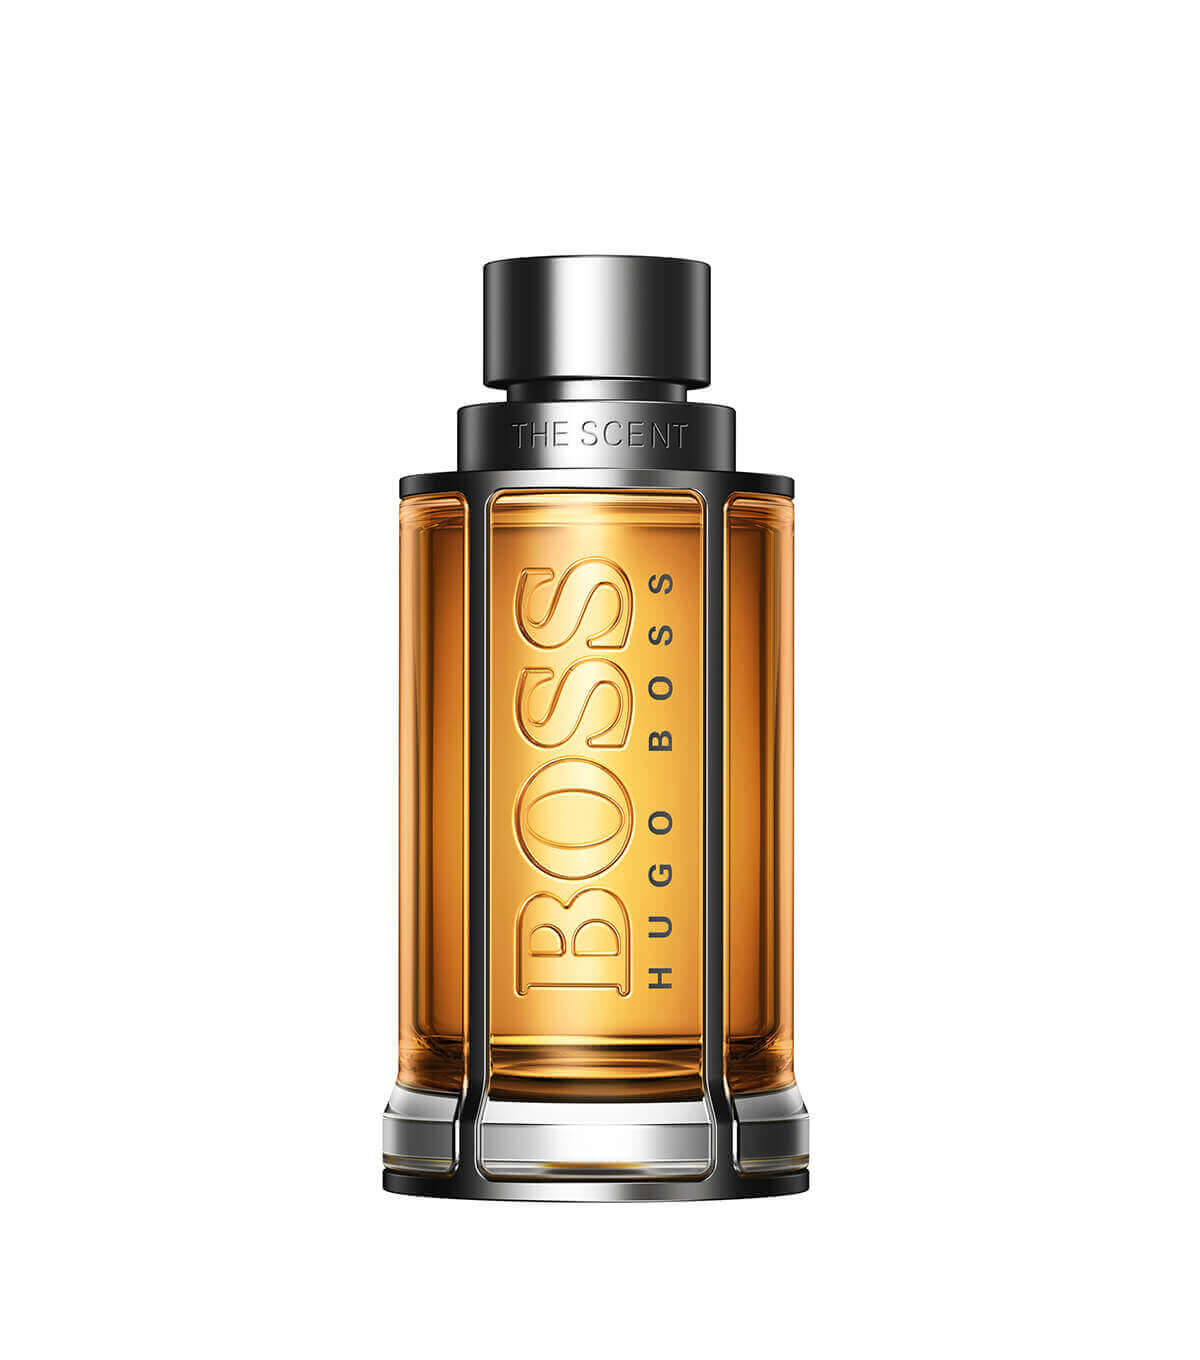 Boss The Scent EDT 100Ml